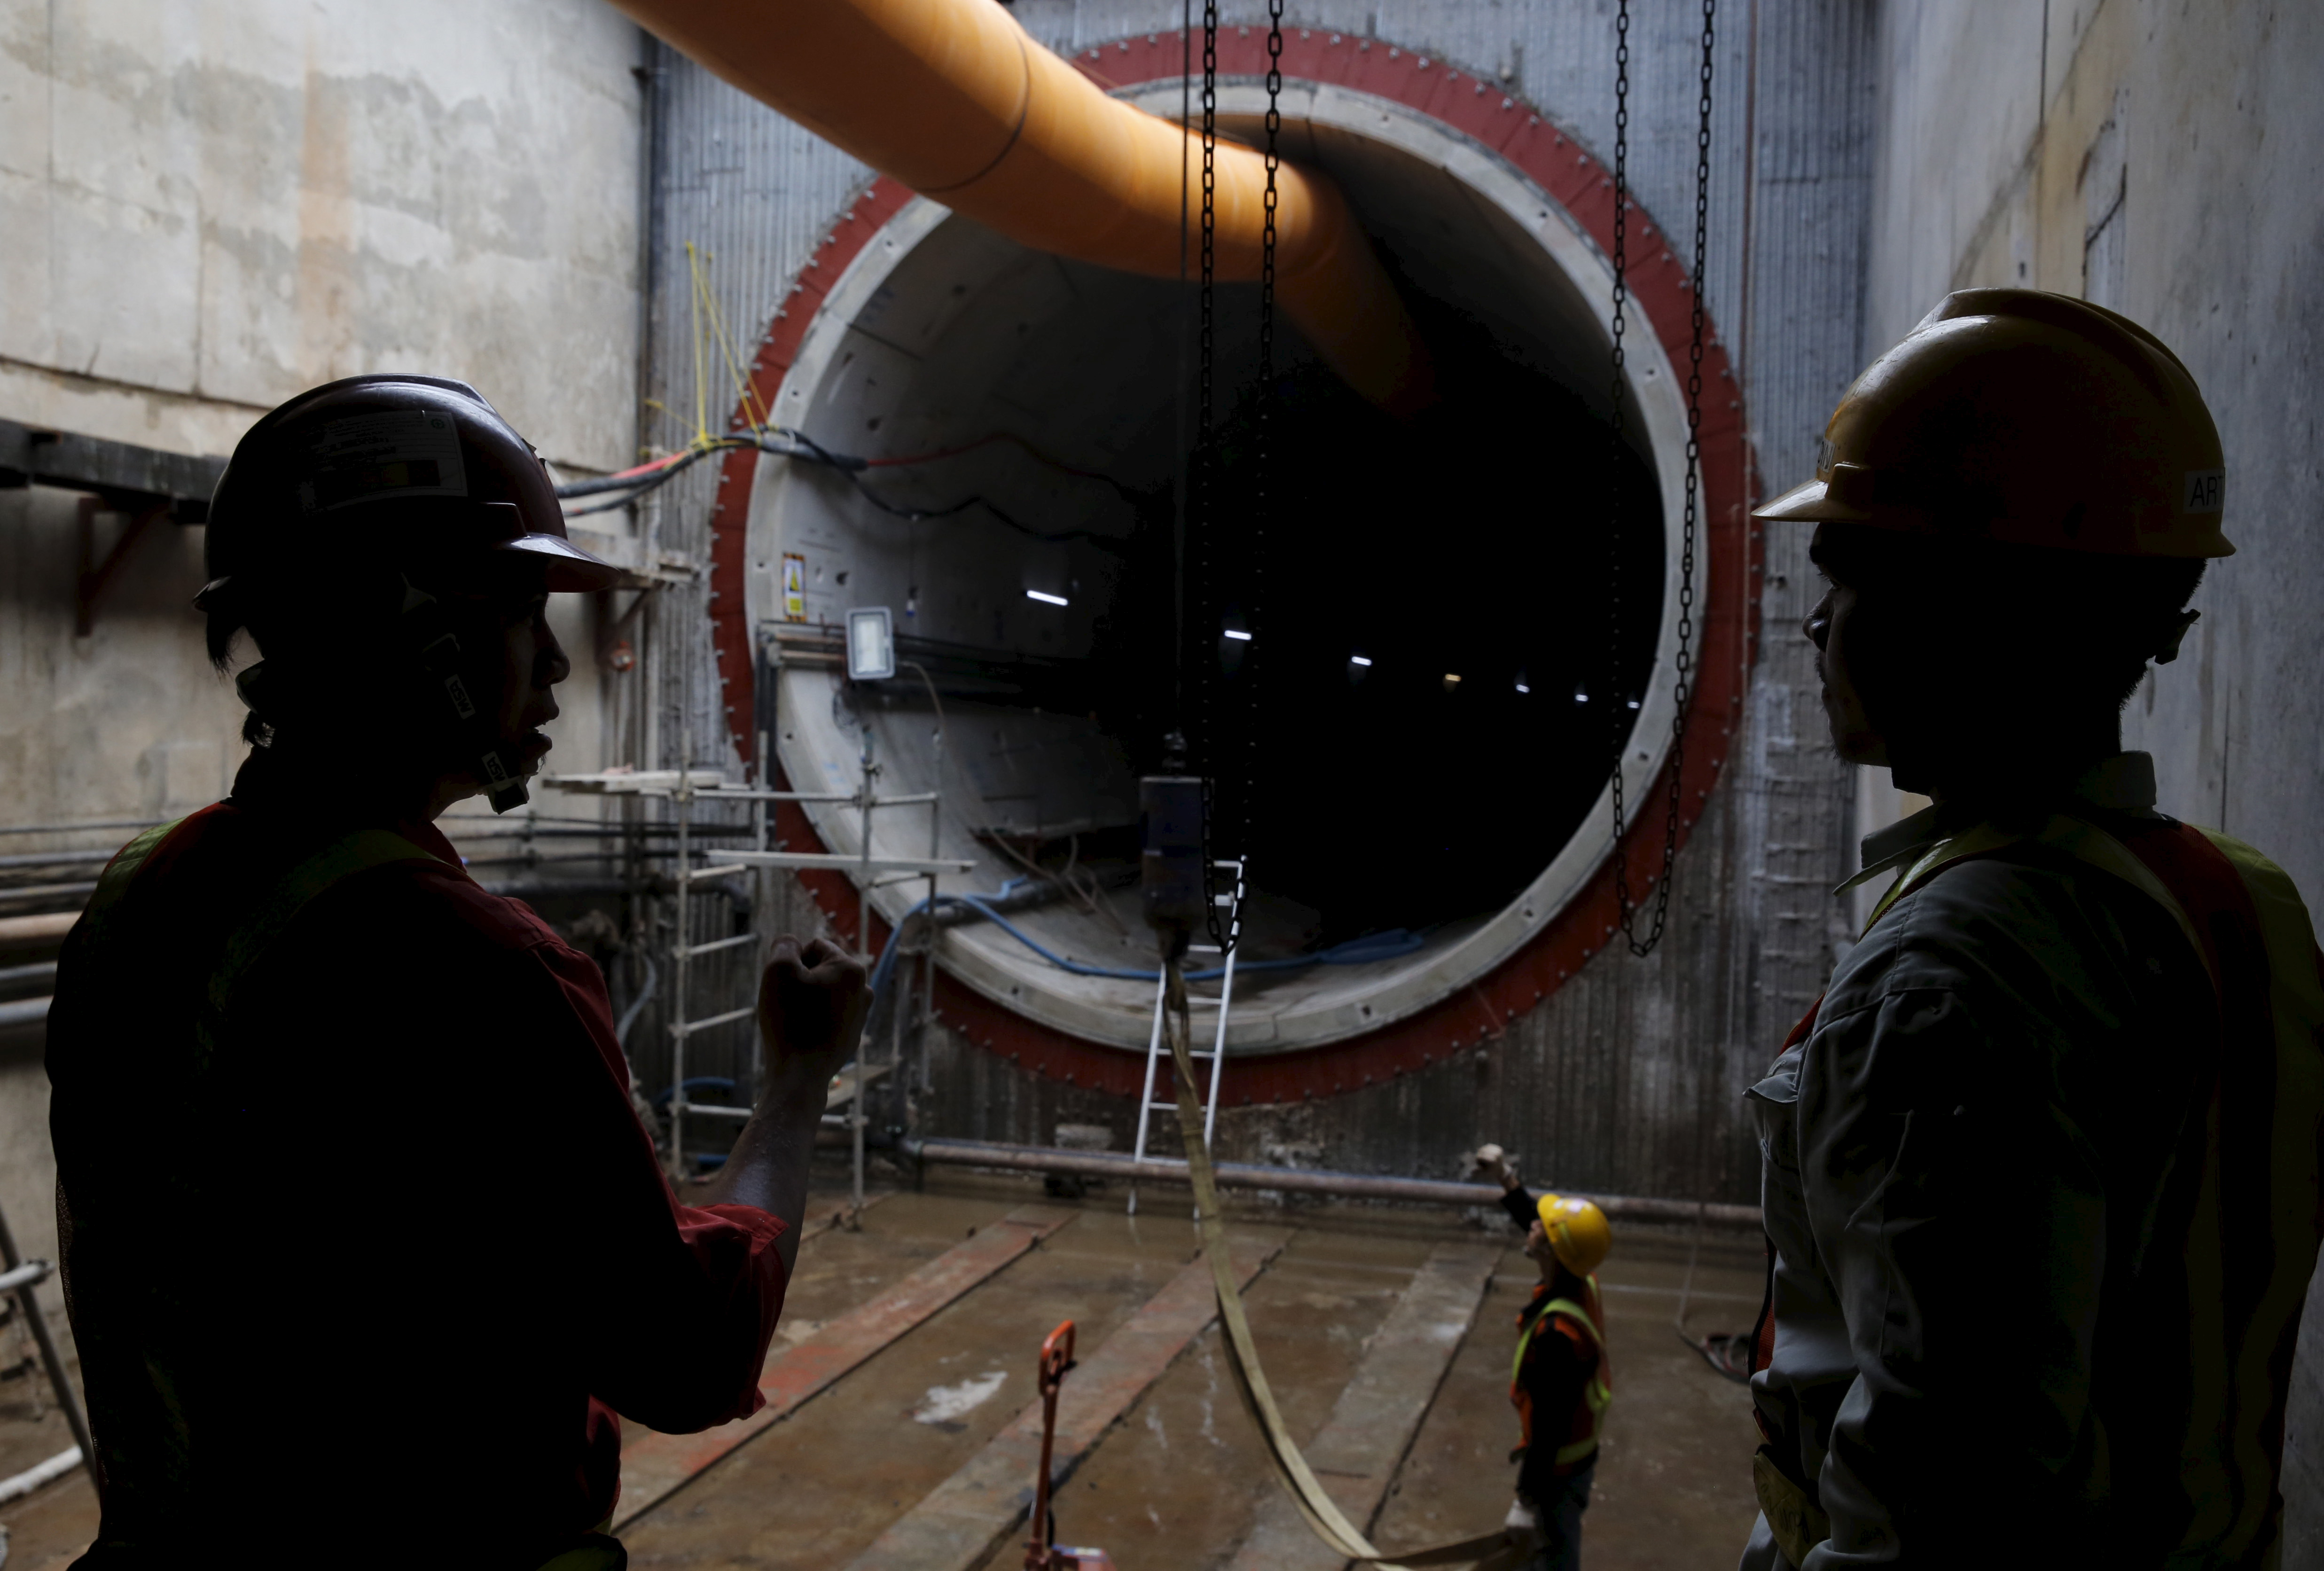 Construction workers stand near an underground MRT (Mass rapid transit system) tunnel in Jakarta